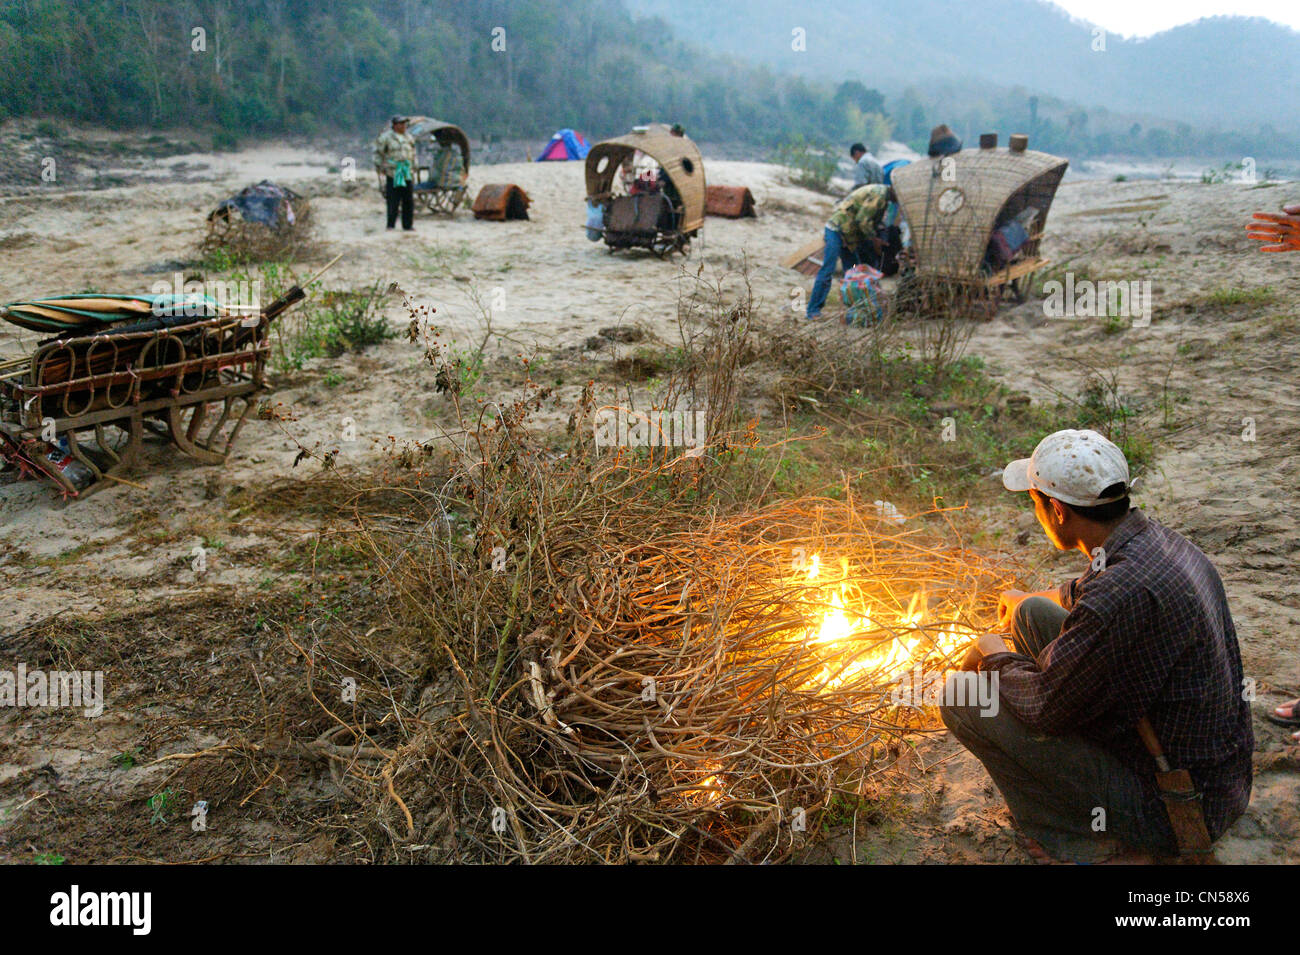 Laos, Sainyabuli Province, Mekong River, trek on elephants, mahouts and camp, preparing for departure palanquins - Stock Image